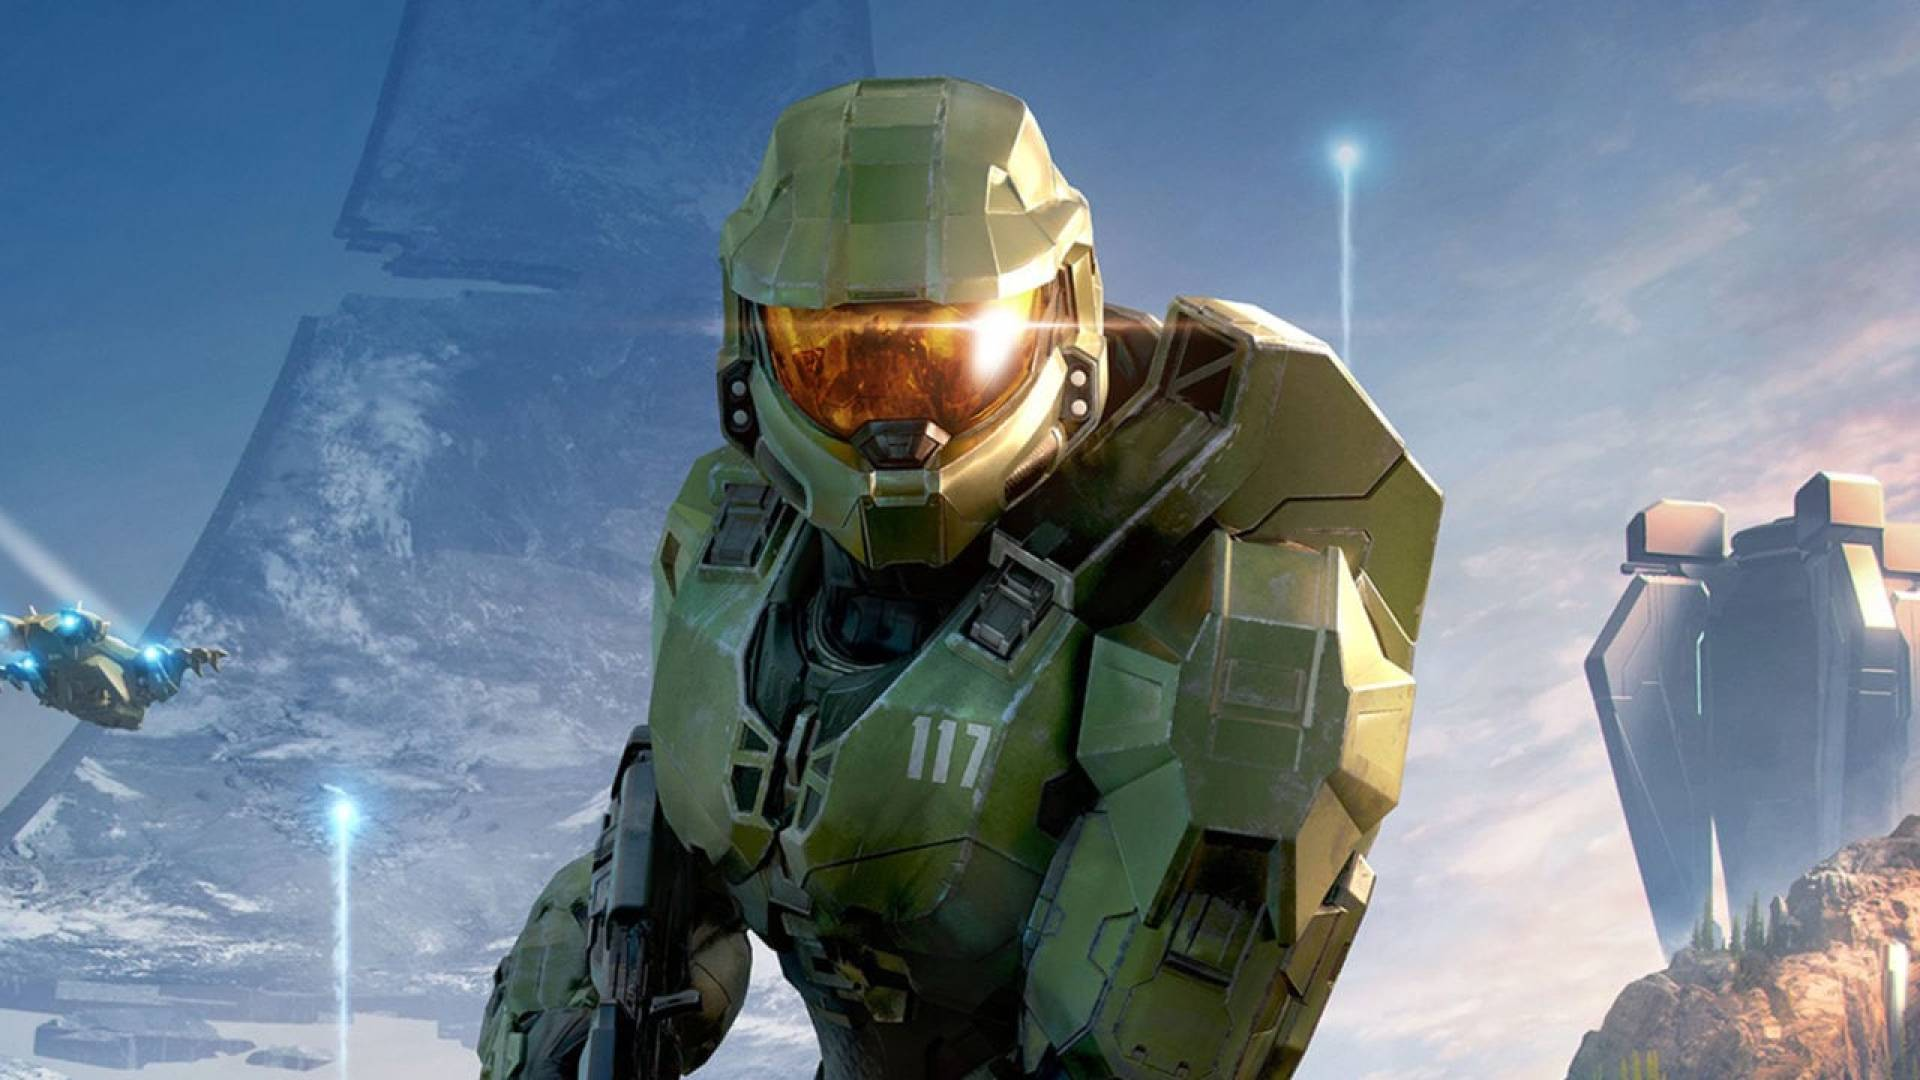 Halo: Infinite, Phil Spencer reveals when we should expect the game to launch